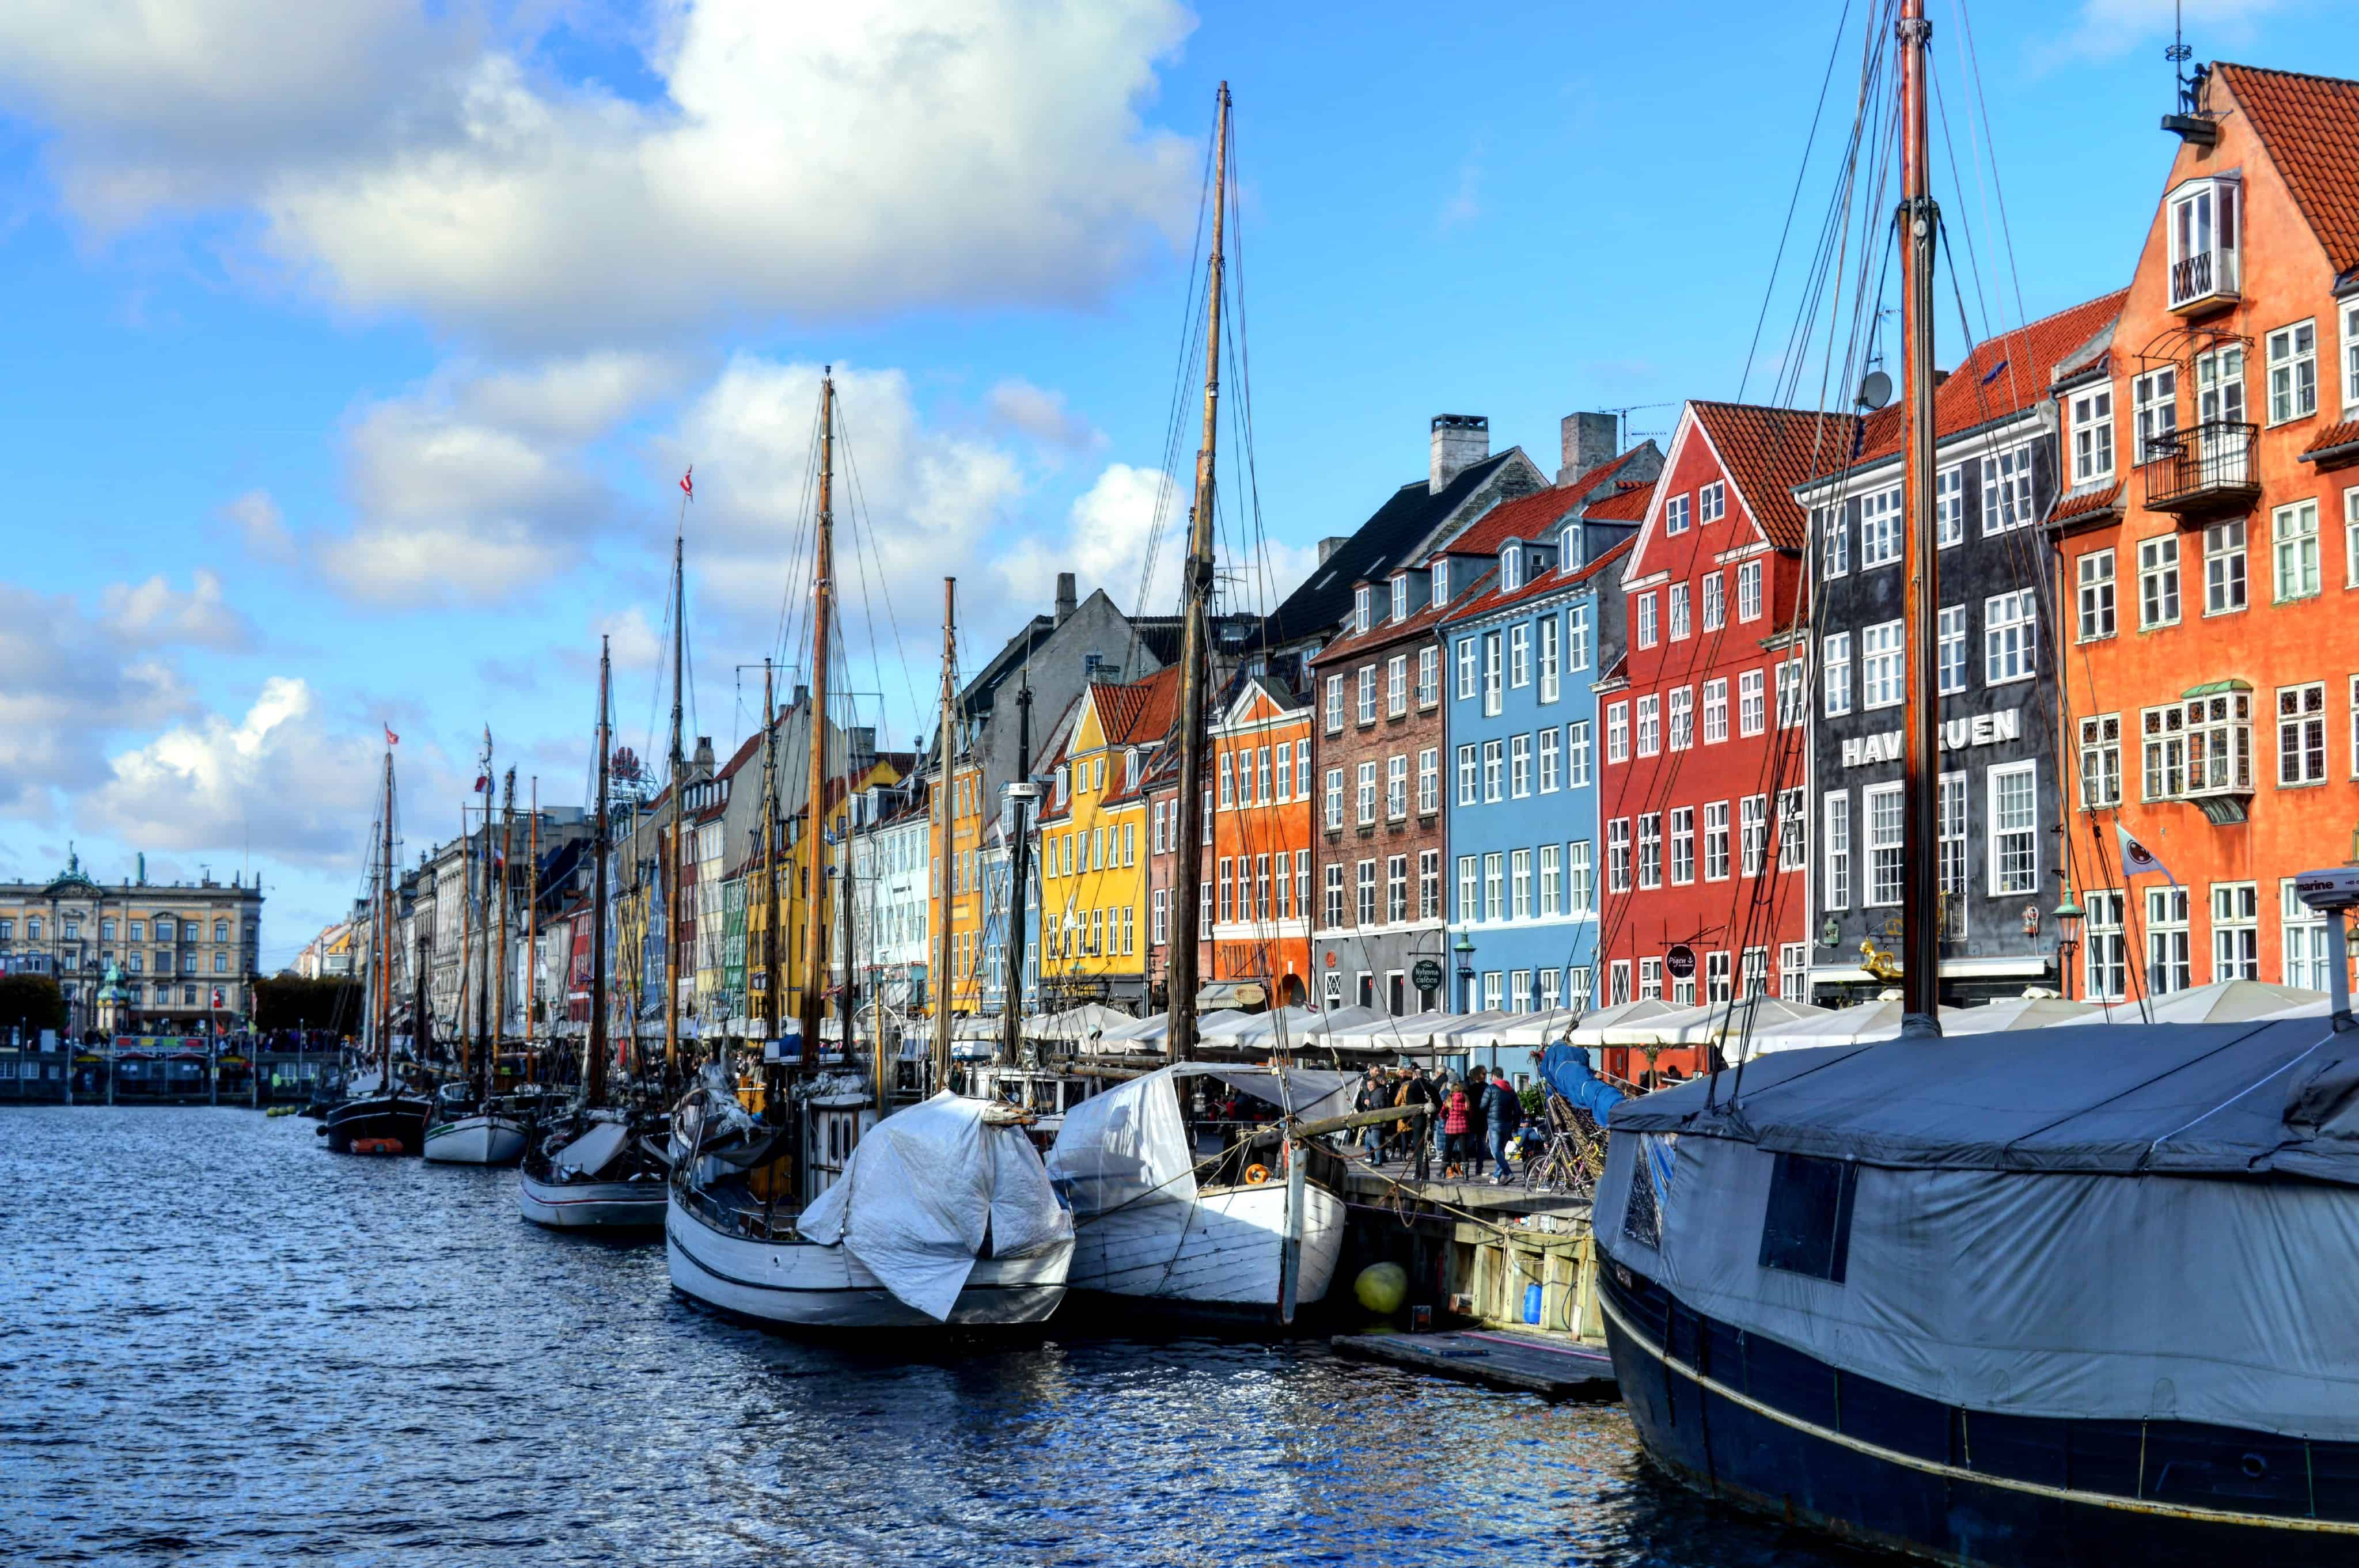 Nyhavn is one of the most beautiful and picturesque areas of Copenhagen